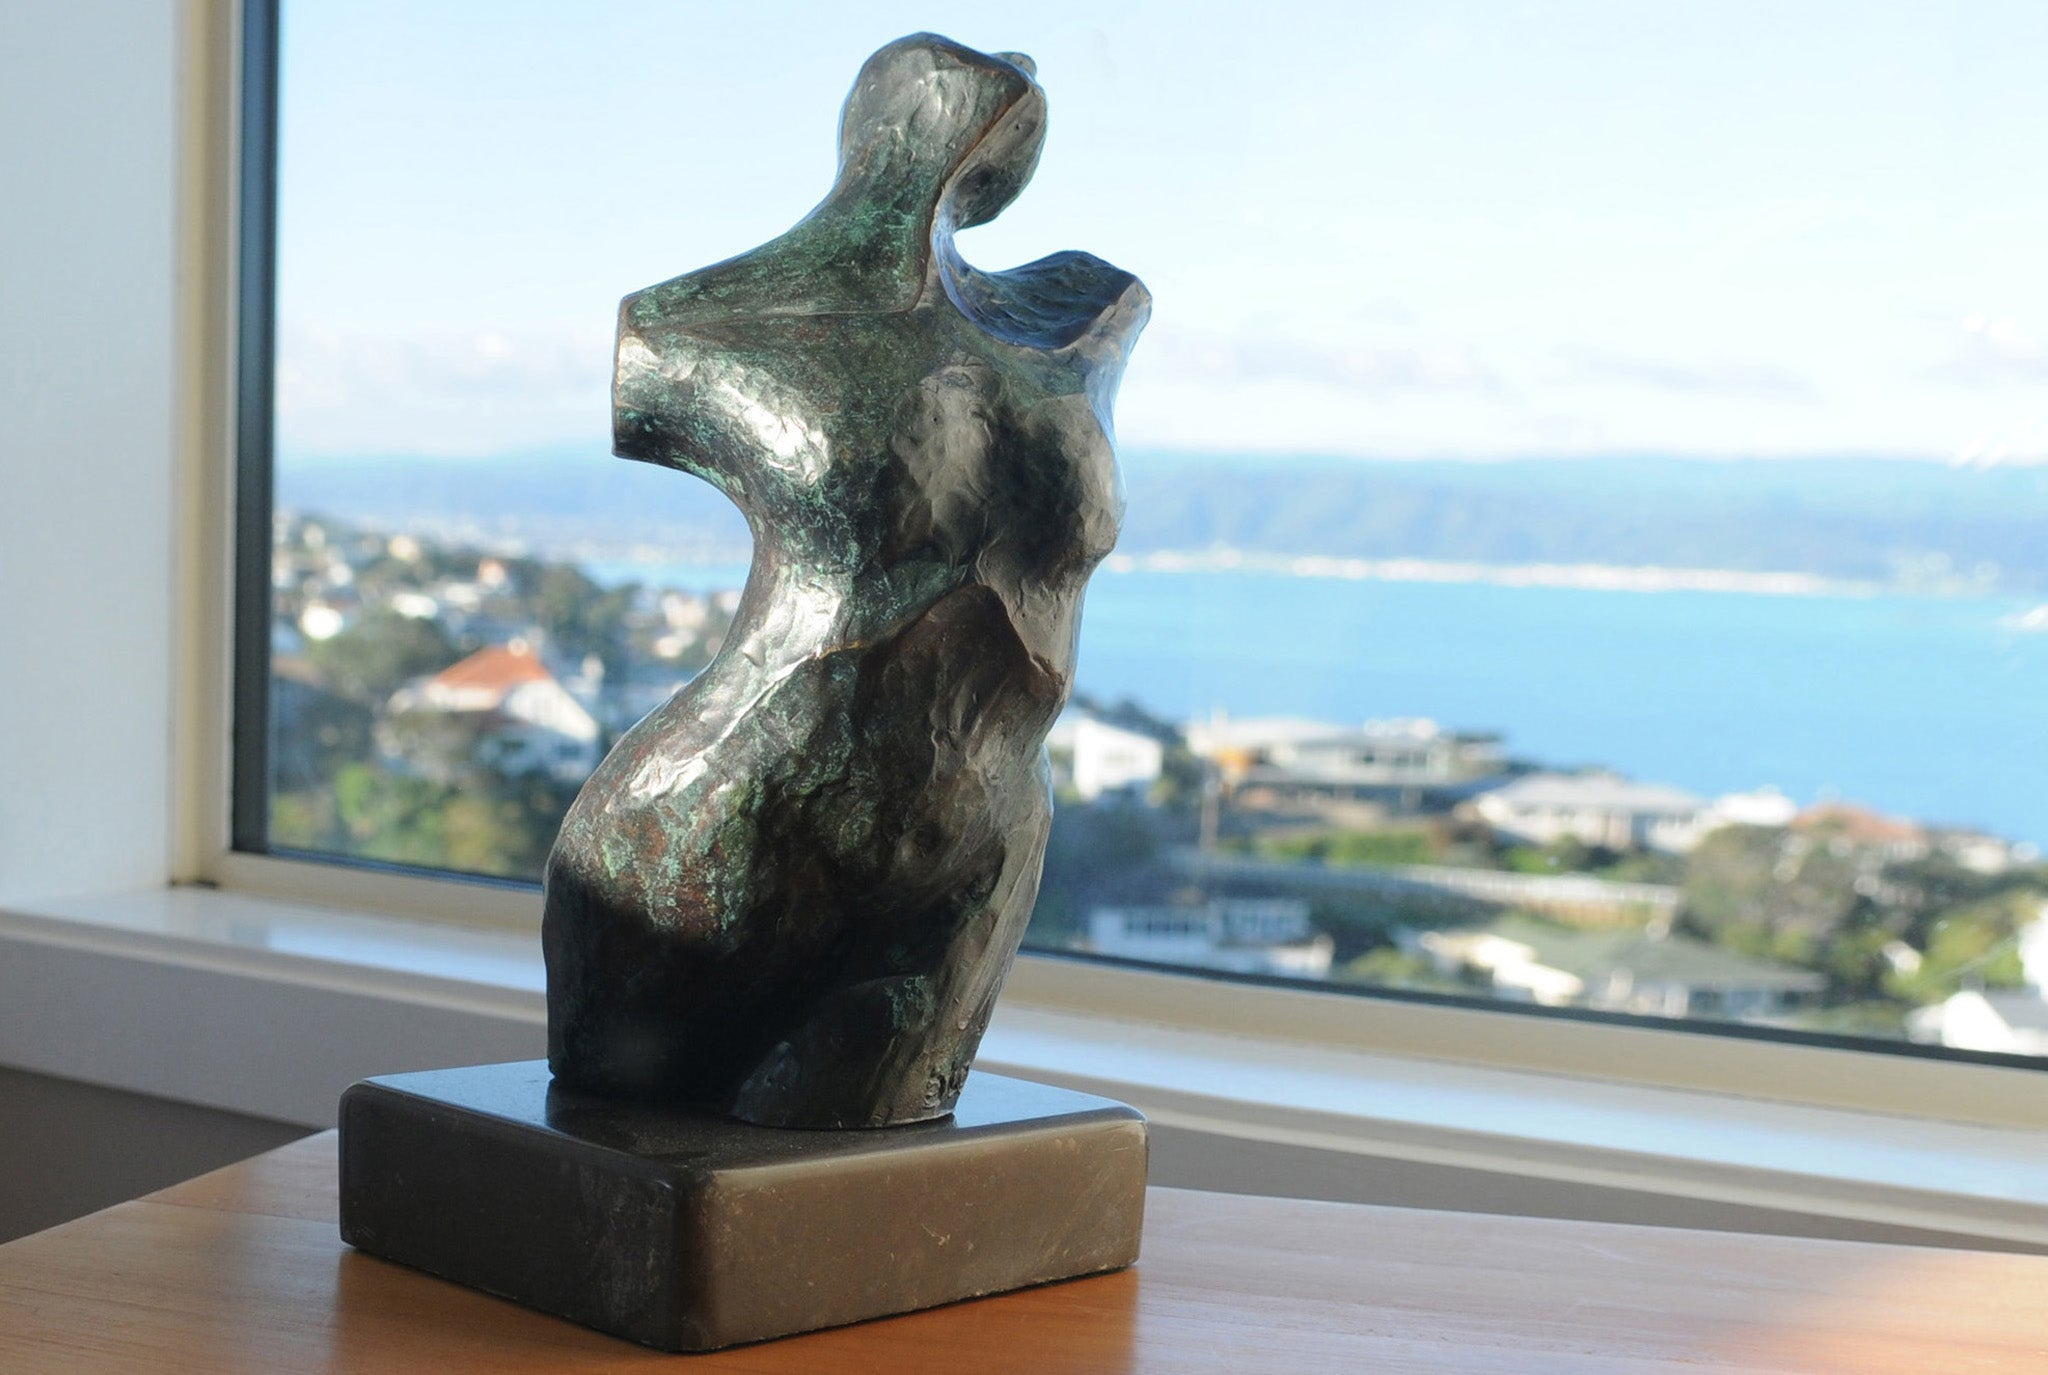 Standing figurative bronze sculpture for sale by Stephen Williams.